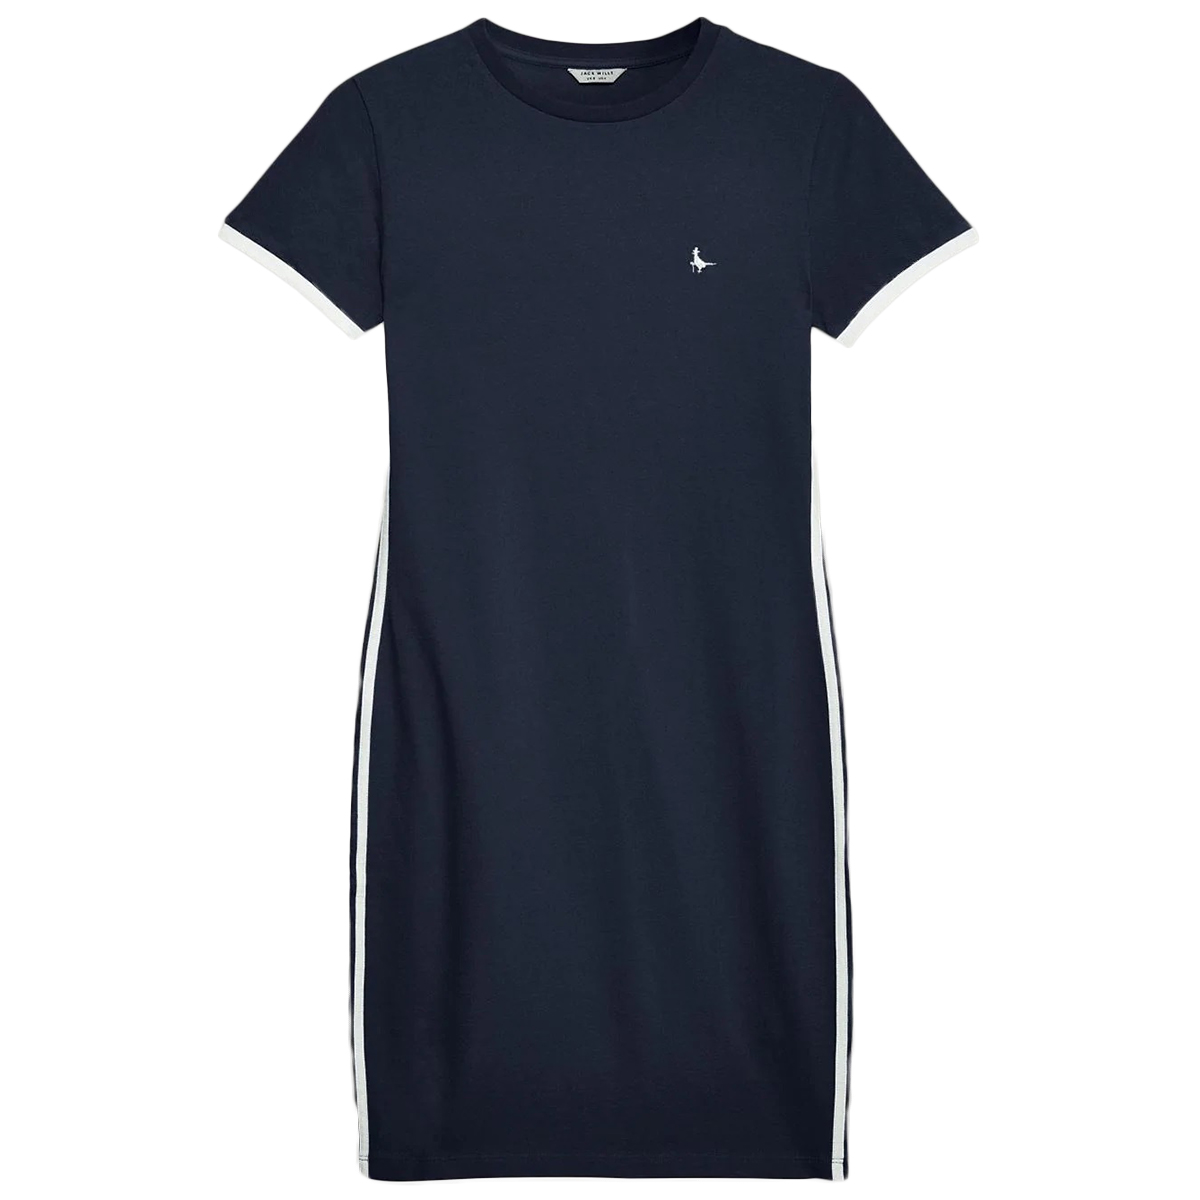 Jack Wills Women's Goodrington Side Stripe Ringer Dress - Black, 10